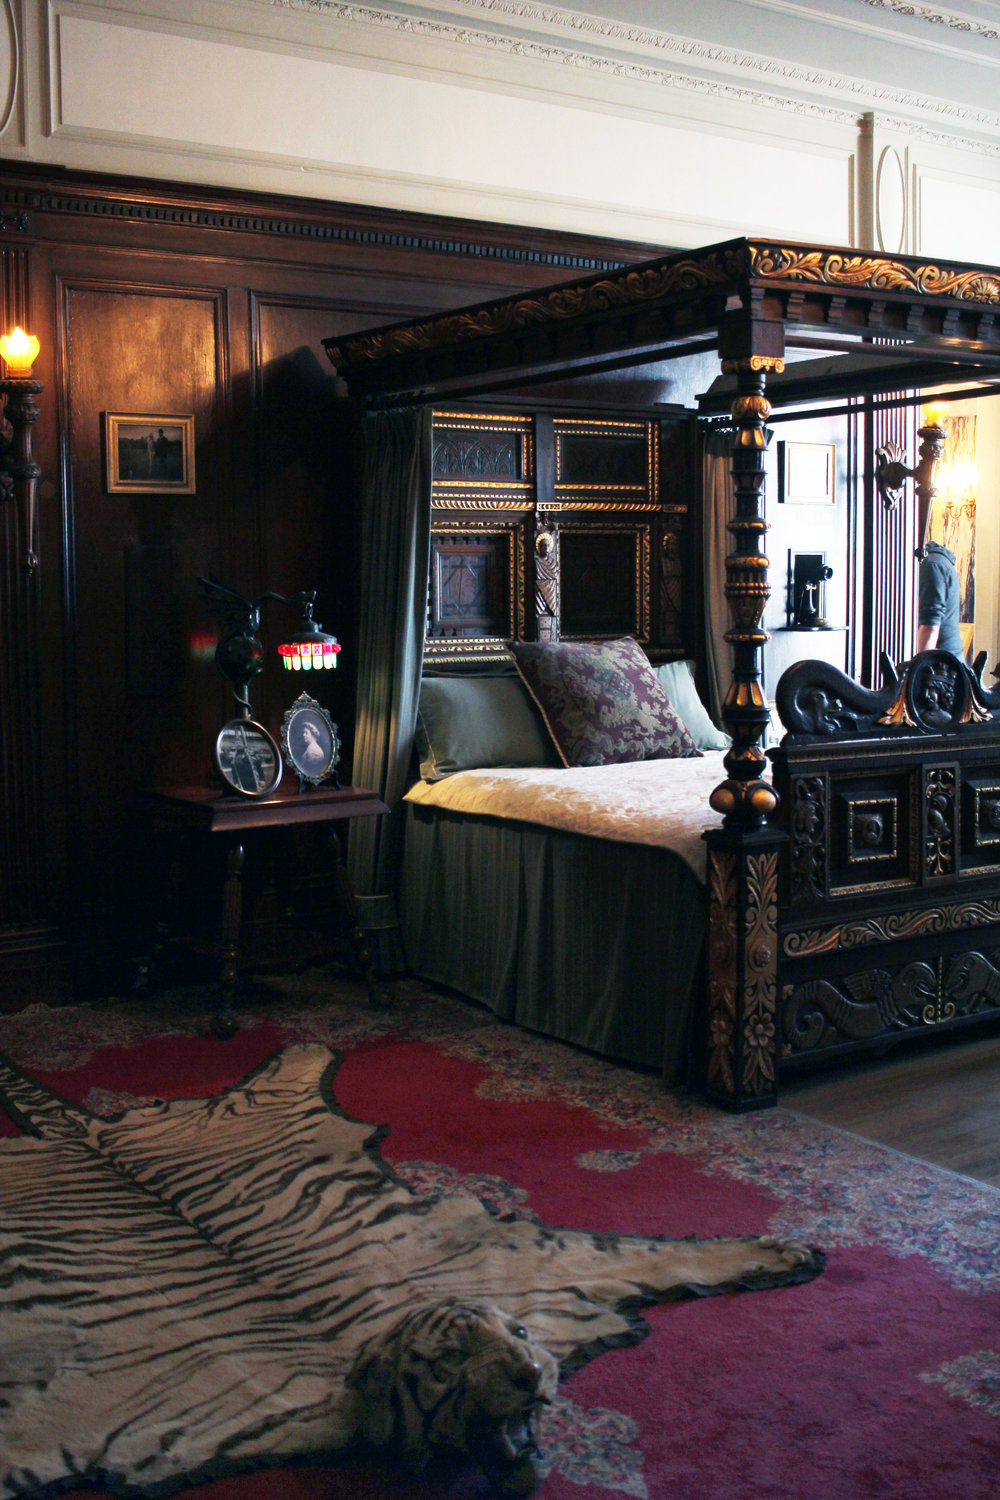 A bedroom in Casa Loma.